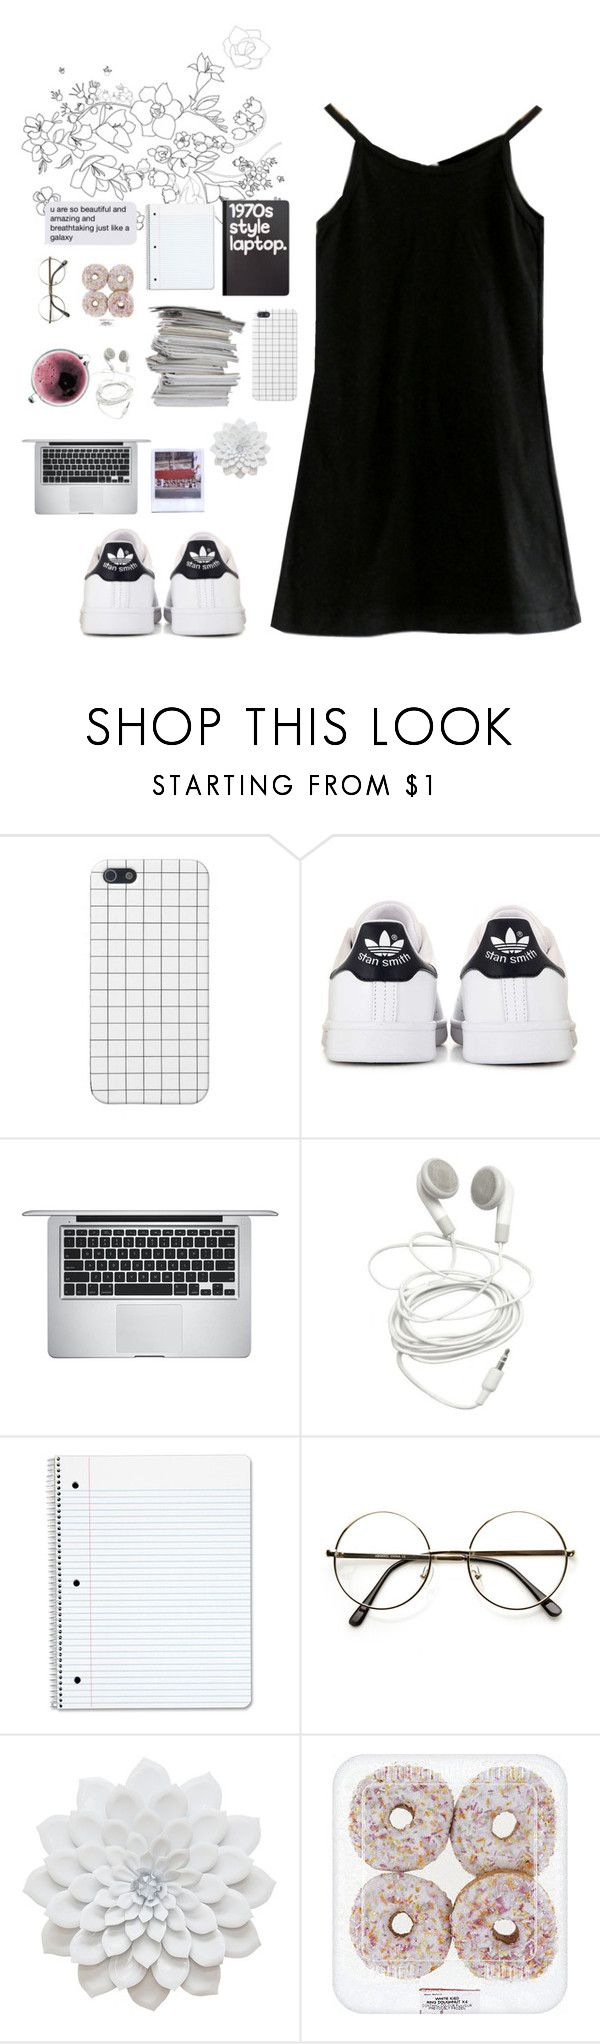 """"" by joycereina ❤ liked on Polyvore featuring adidas, Apple, Retrò, Concord and country"